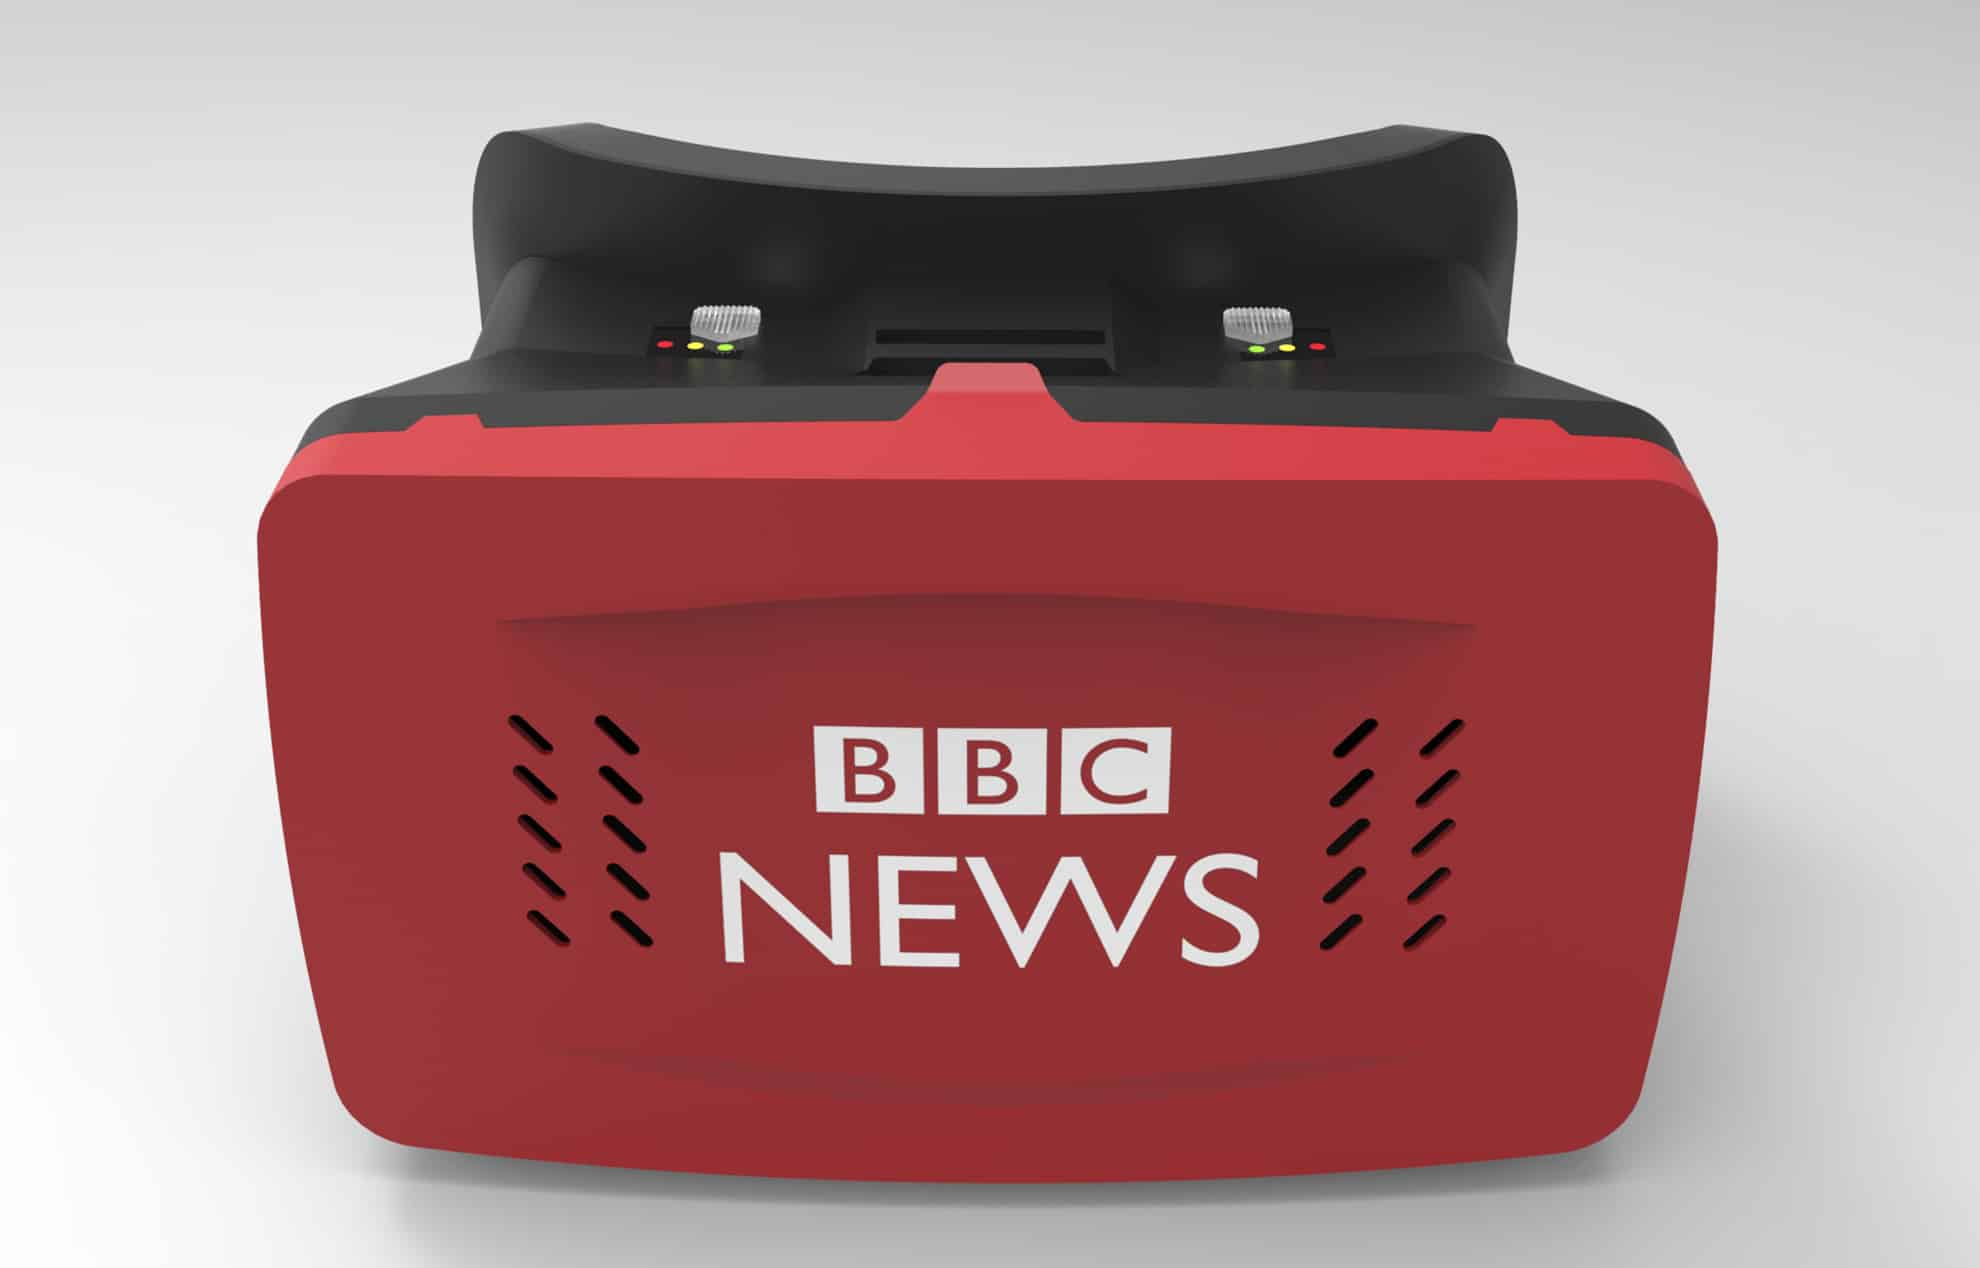 bbc-custom-branded-virtual-reality-headset